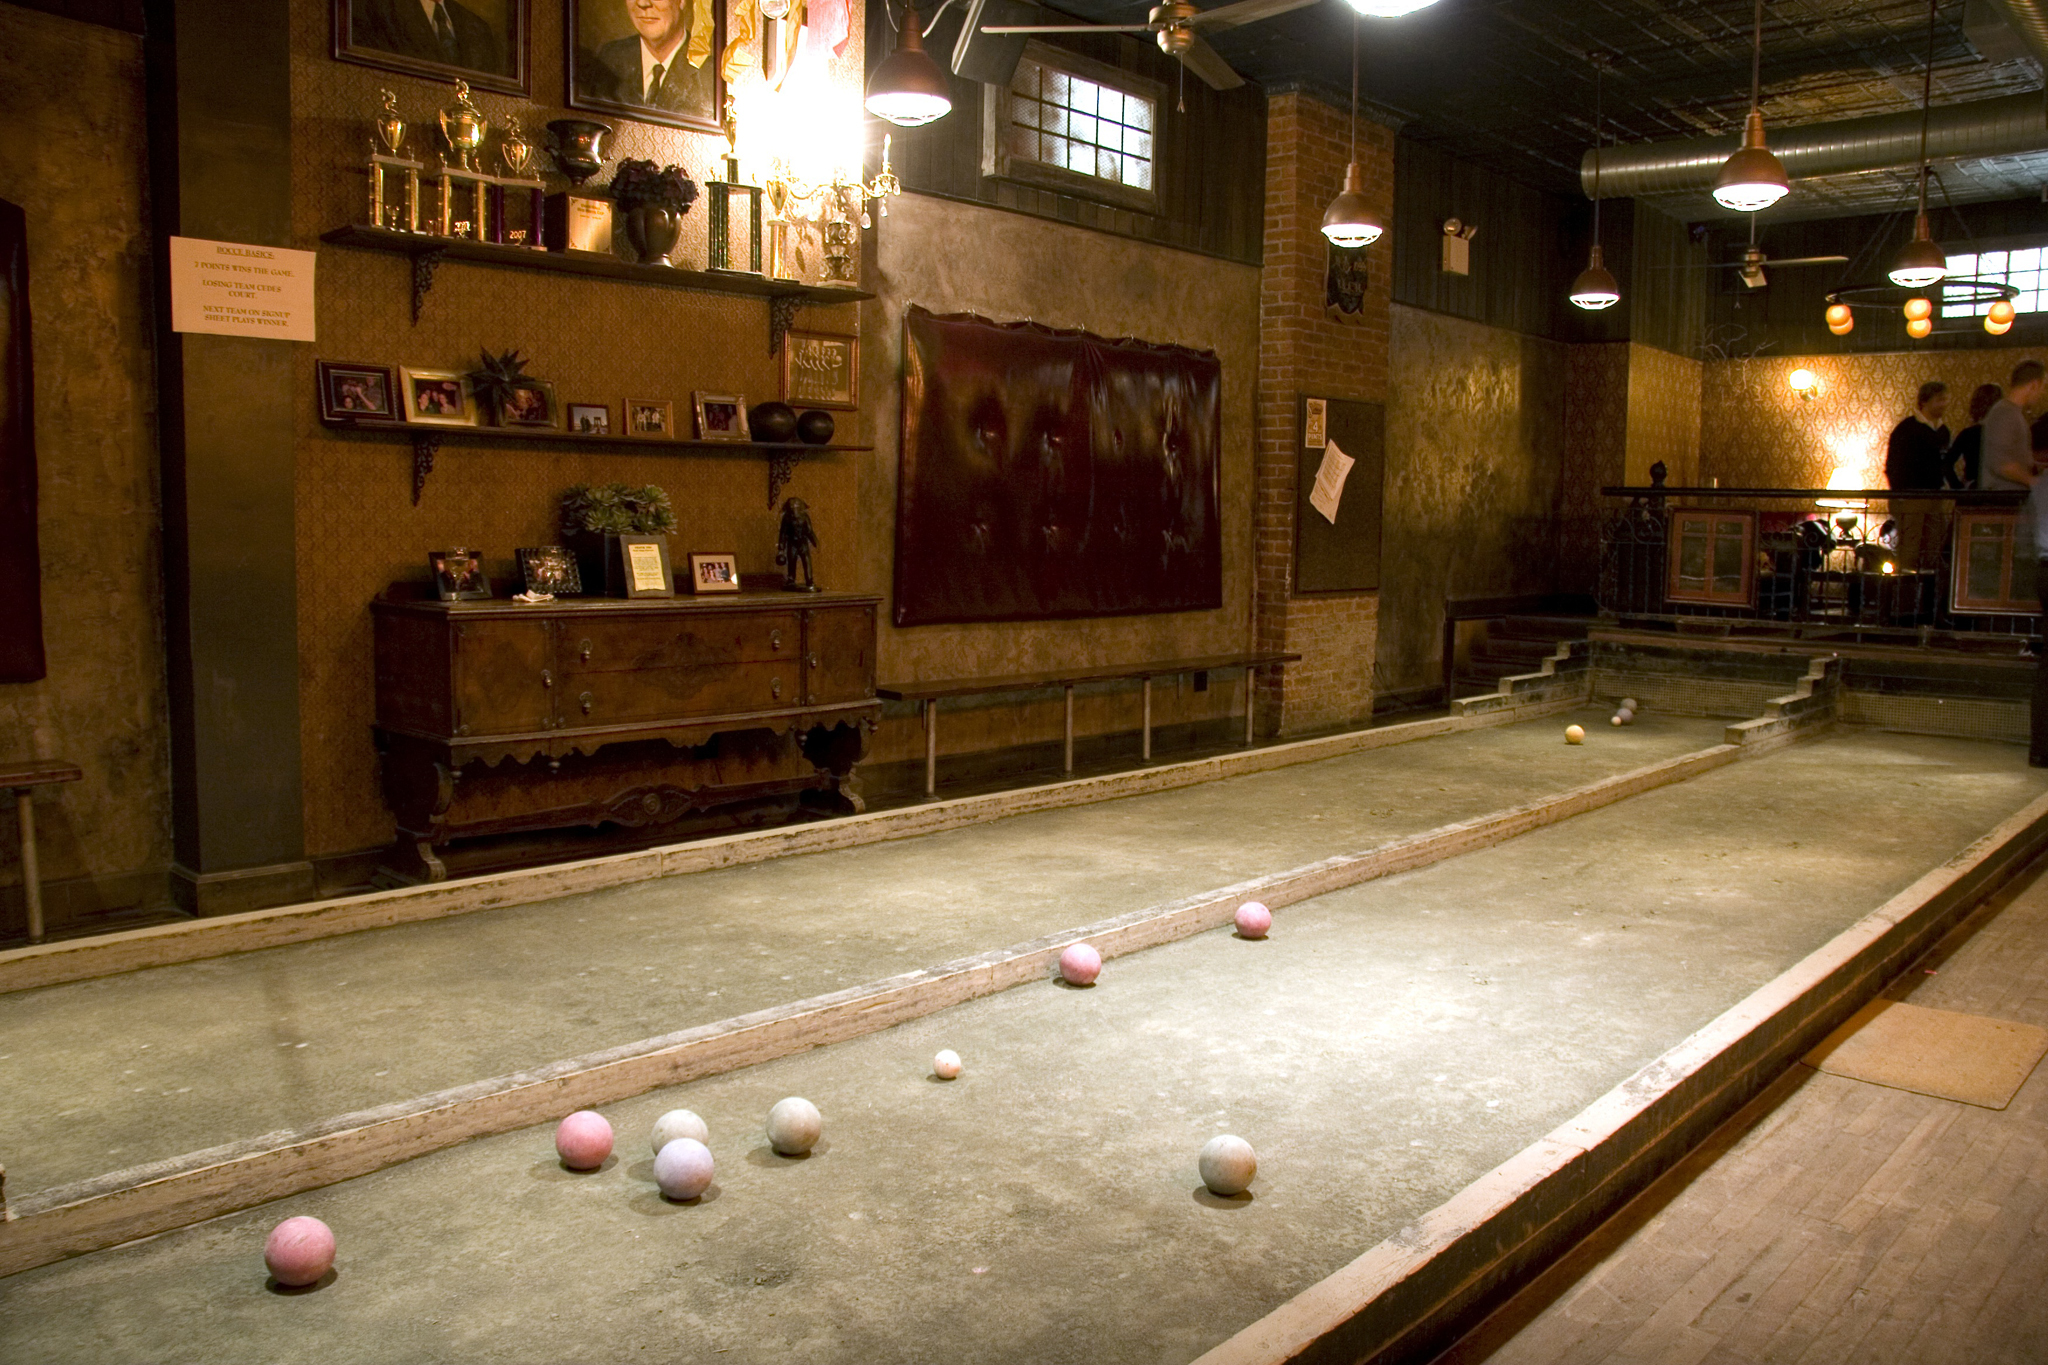 Best nightlife in Park Slope: The hottest after-dark hangouts